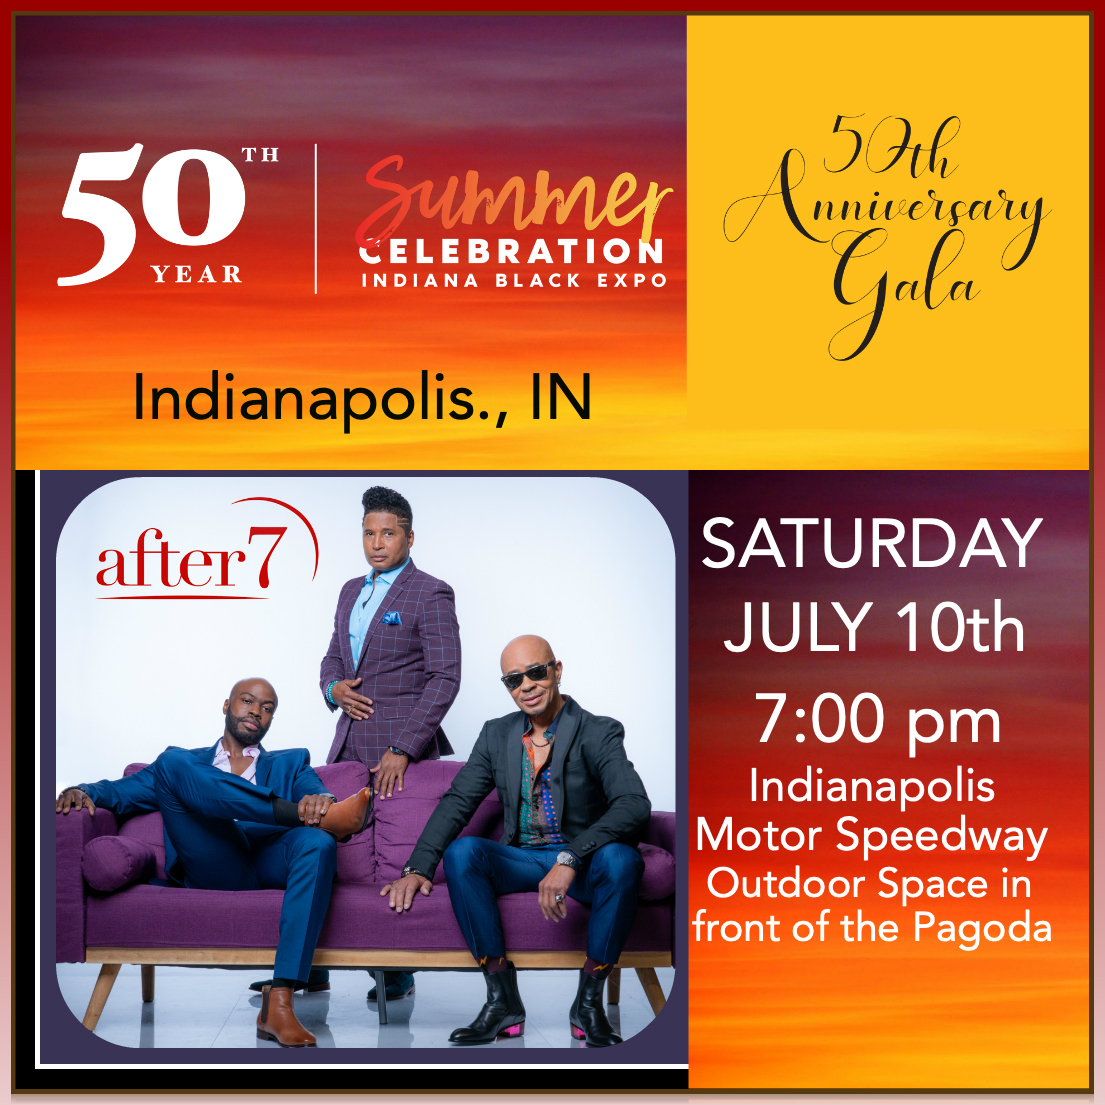 After 7 Indy flyer